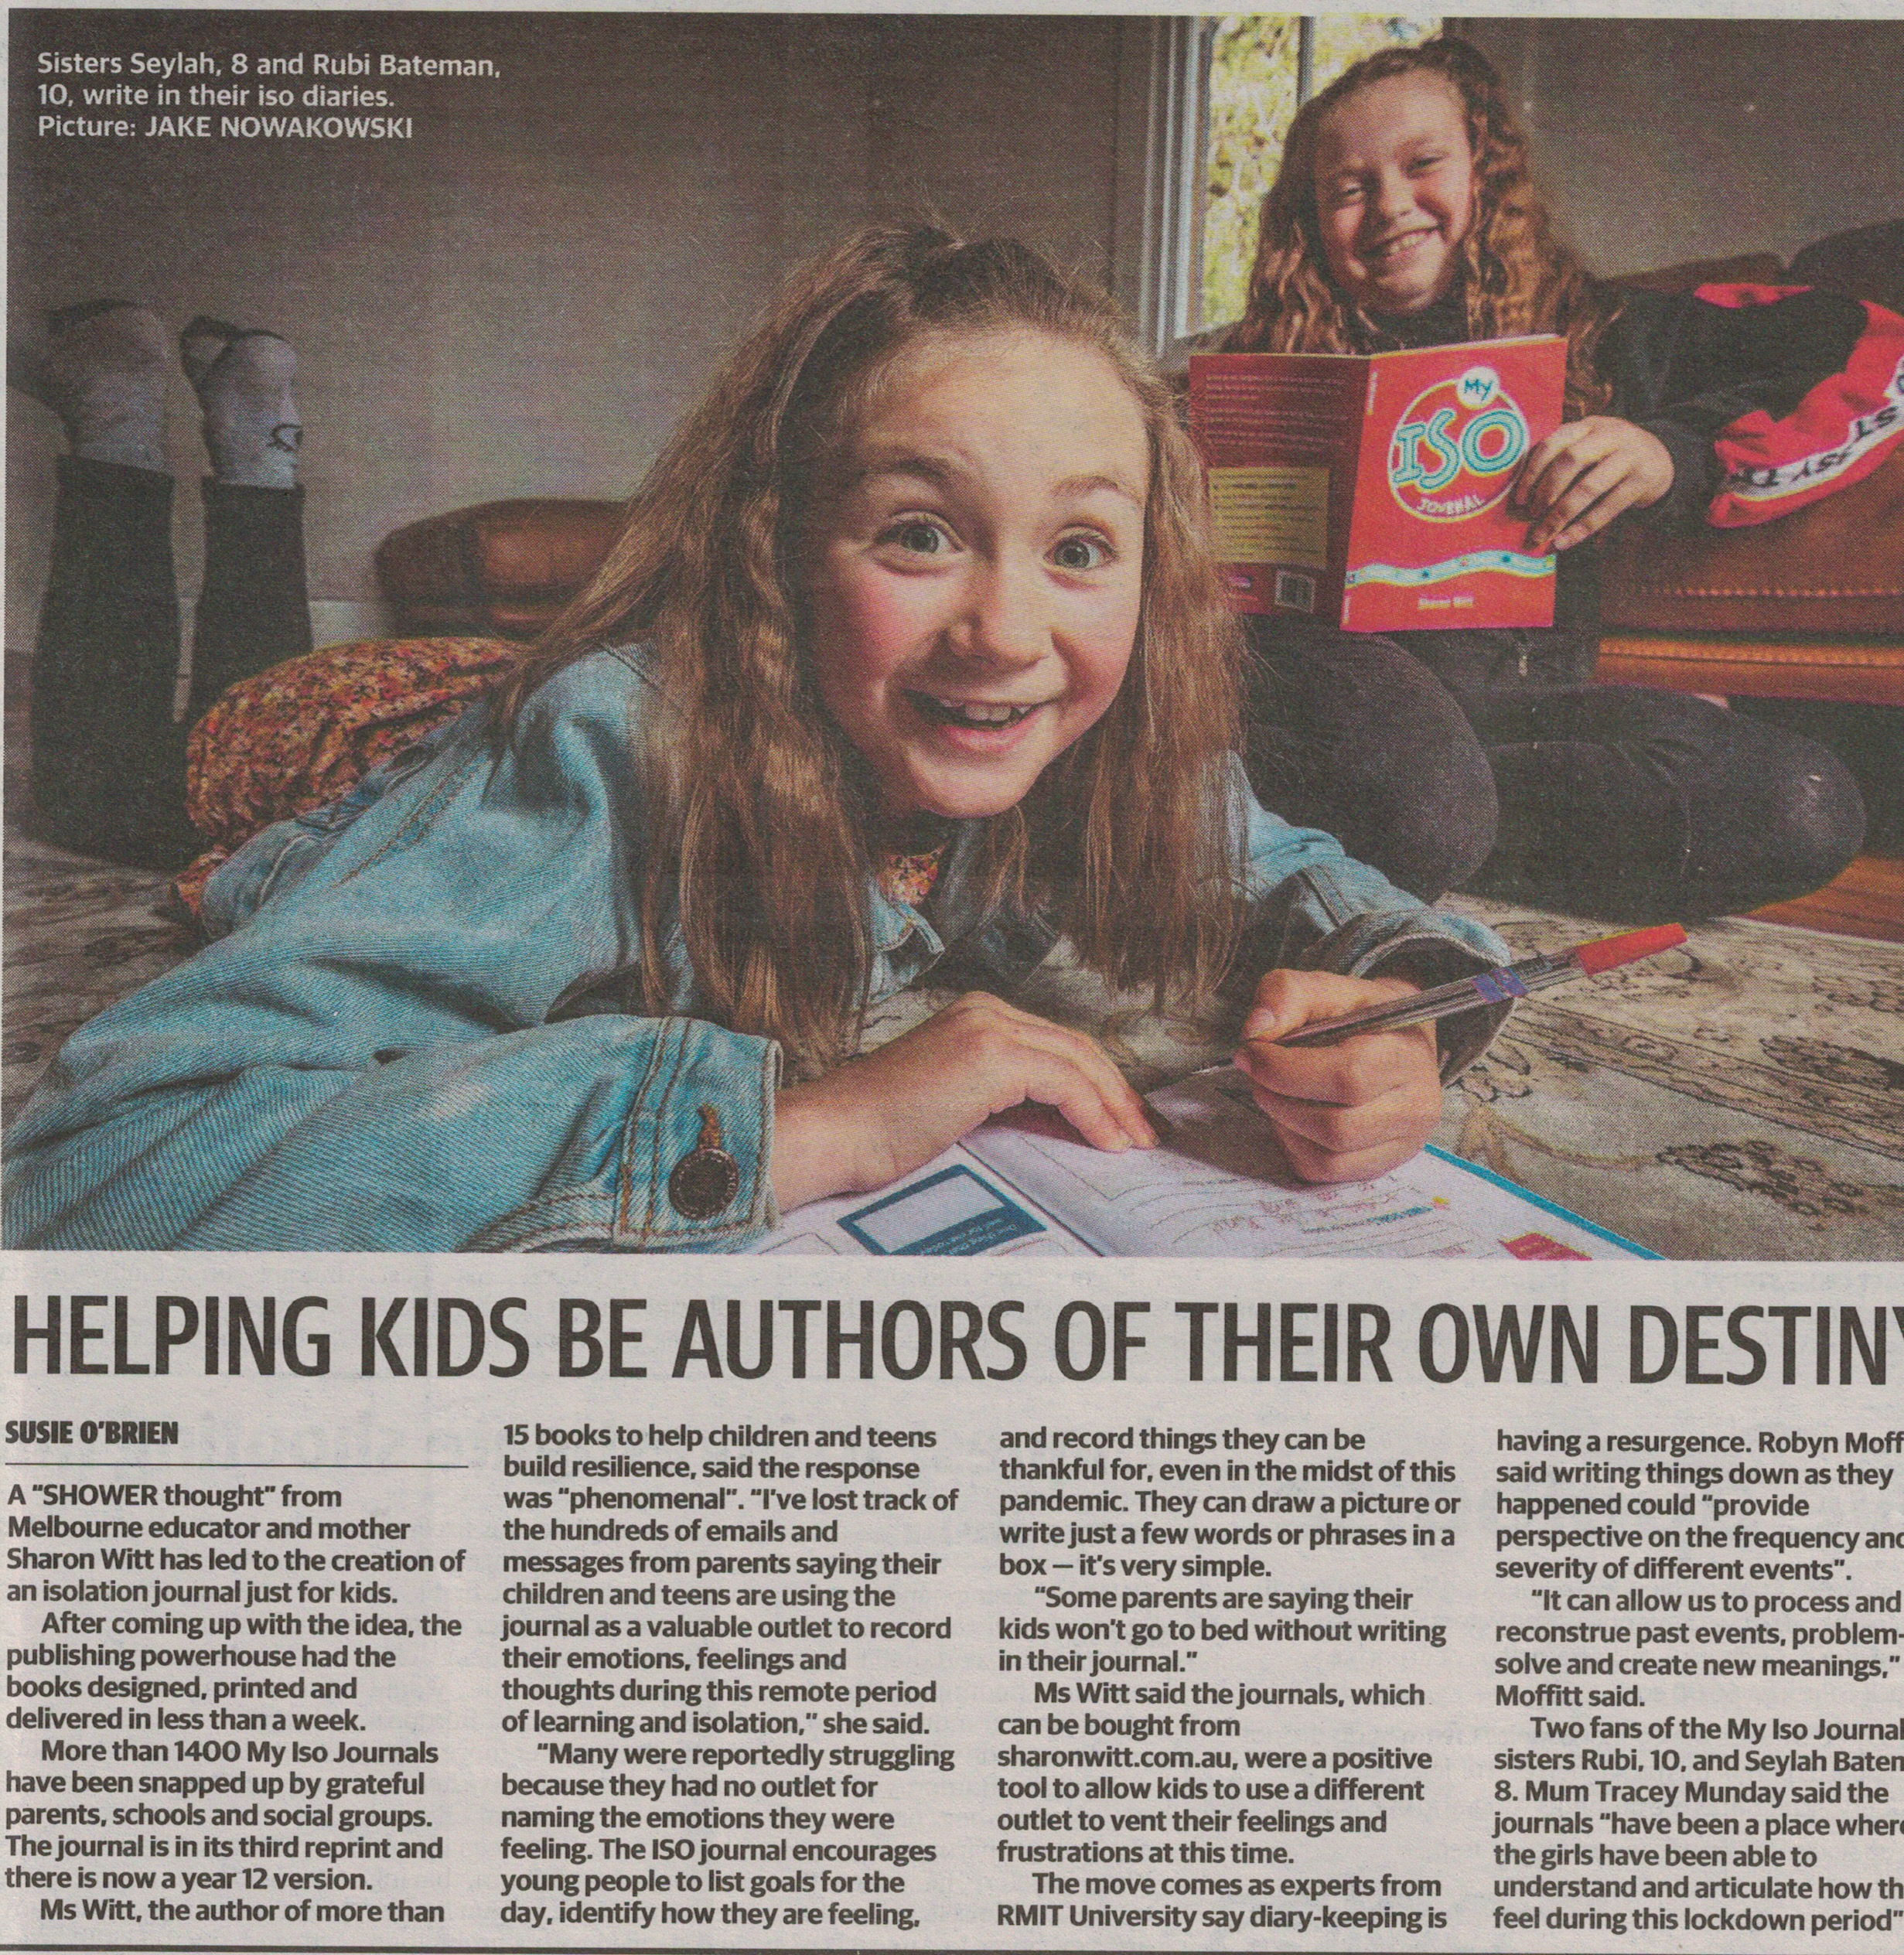 Sharon Witt, Herald Sun Interview